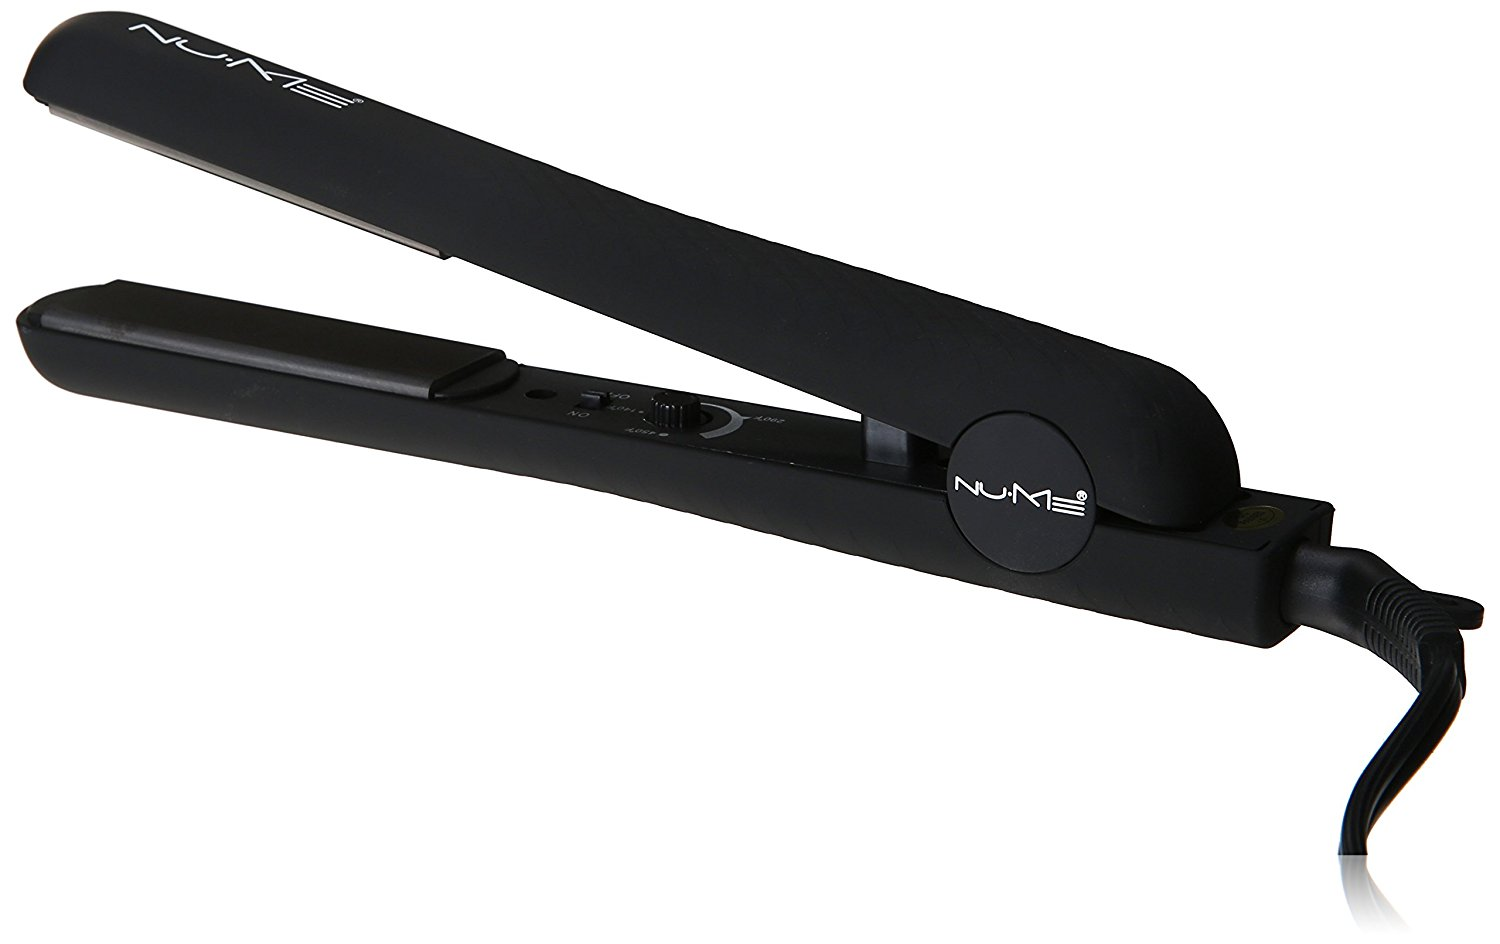 Cheap Nume Flat Iron Find Nume Flat Iron Deals On Line At